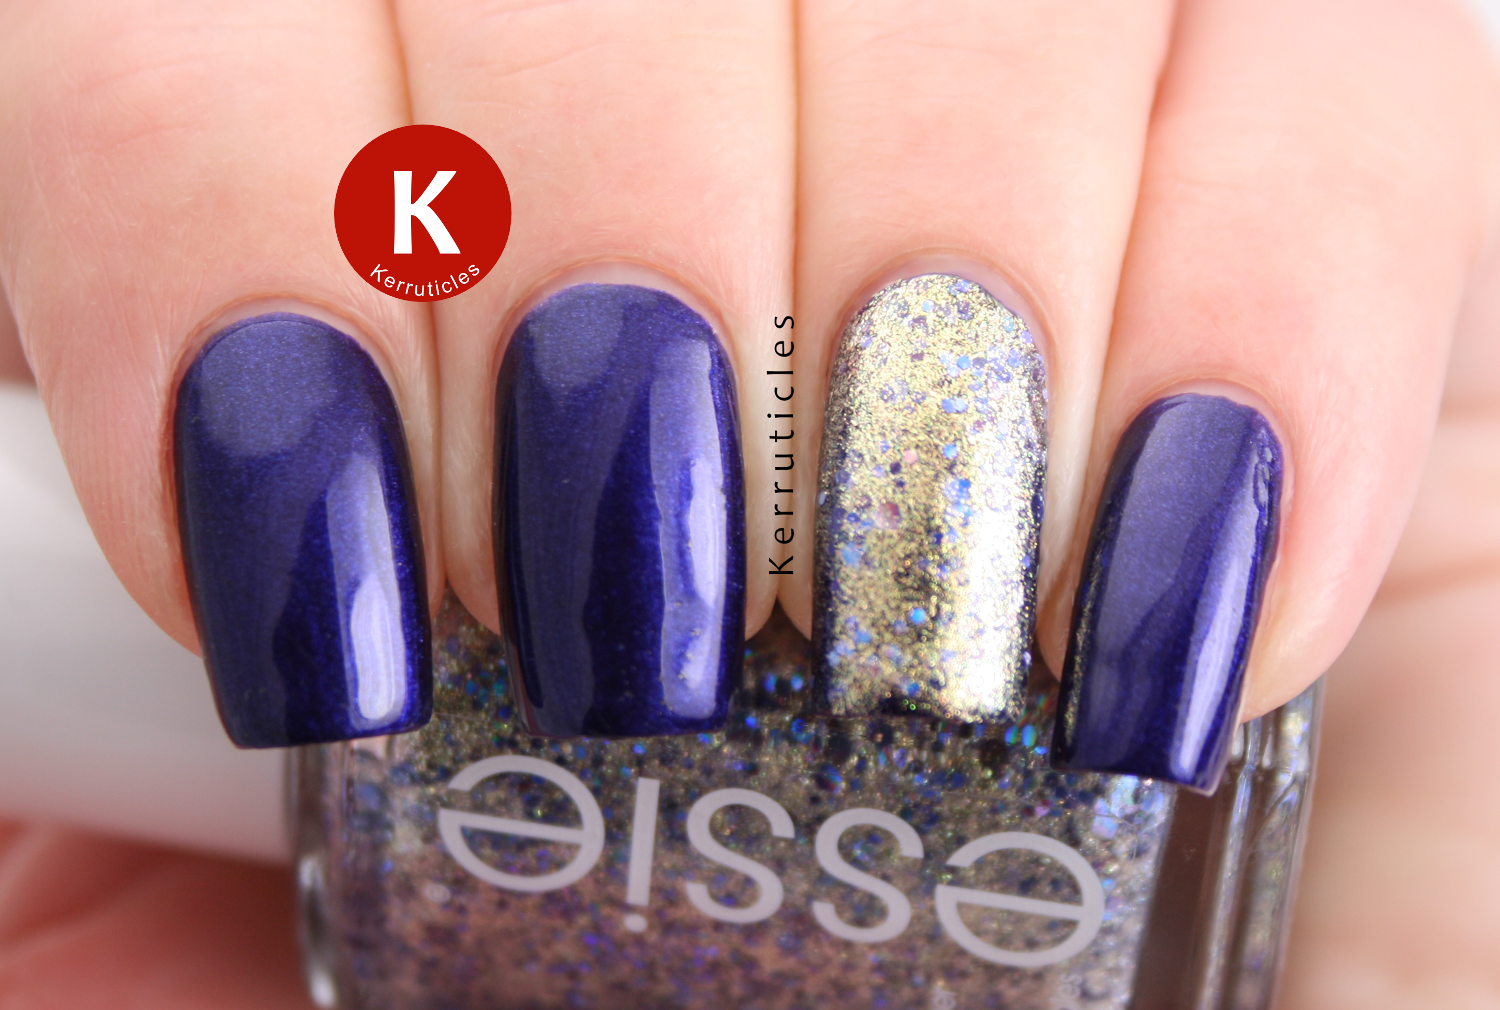 L'Oreal Mystic Blue Essie On A Silver Platter